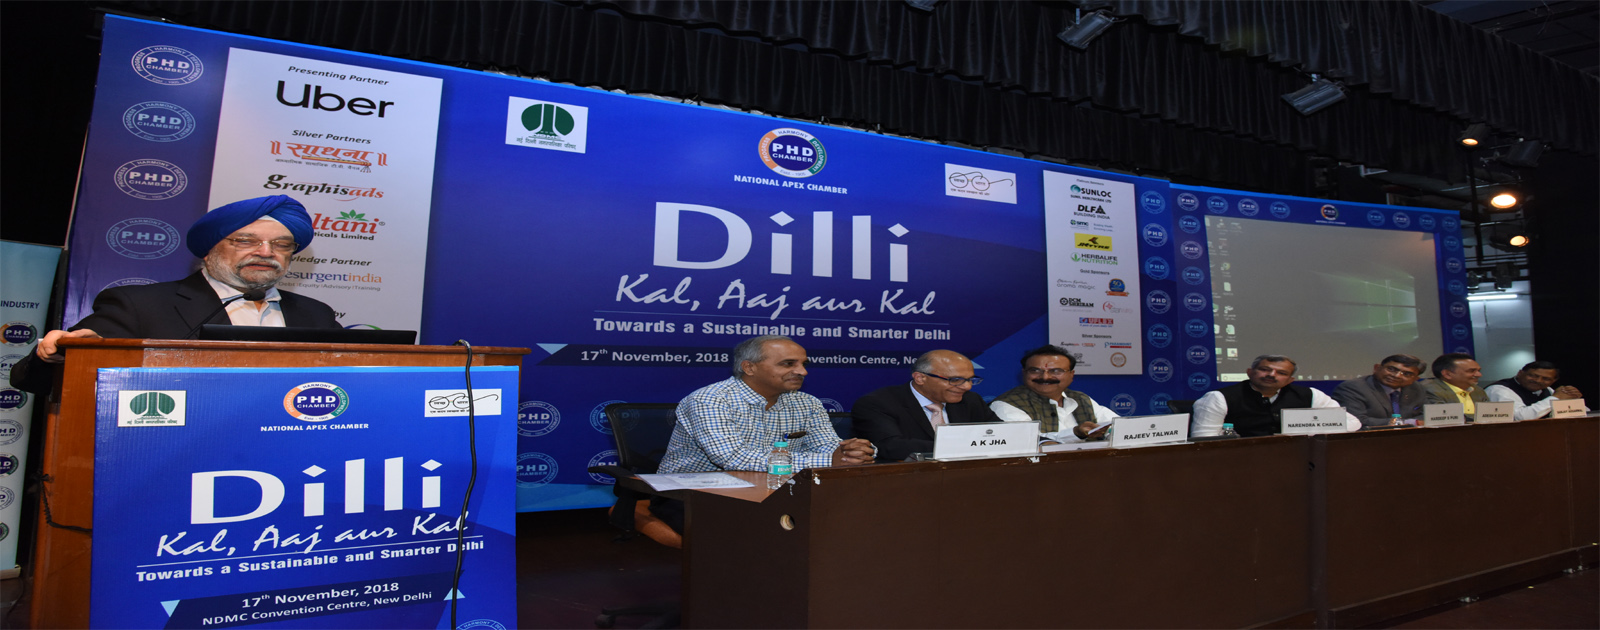 Dilli : Kal, Aaj aur Kal – Towards a Sustainable and Smarter Delhi